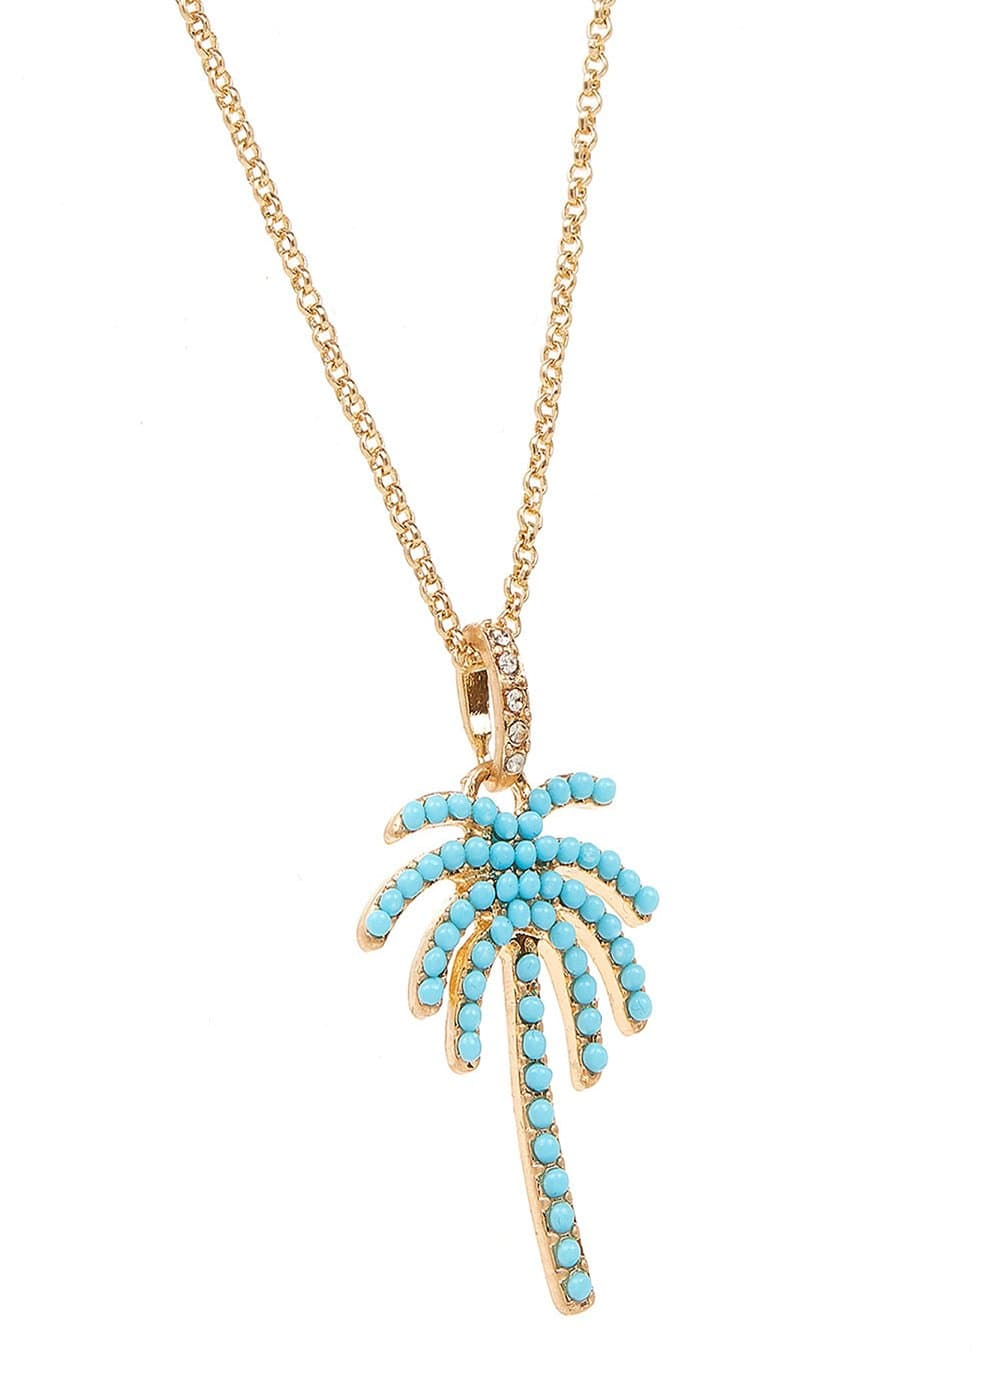 Teenzshop Girls Turquoise Palm Tree Necklace-Detail